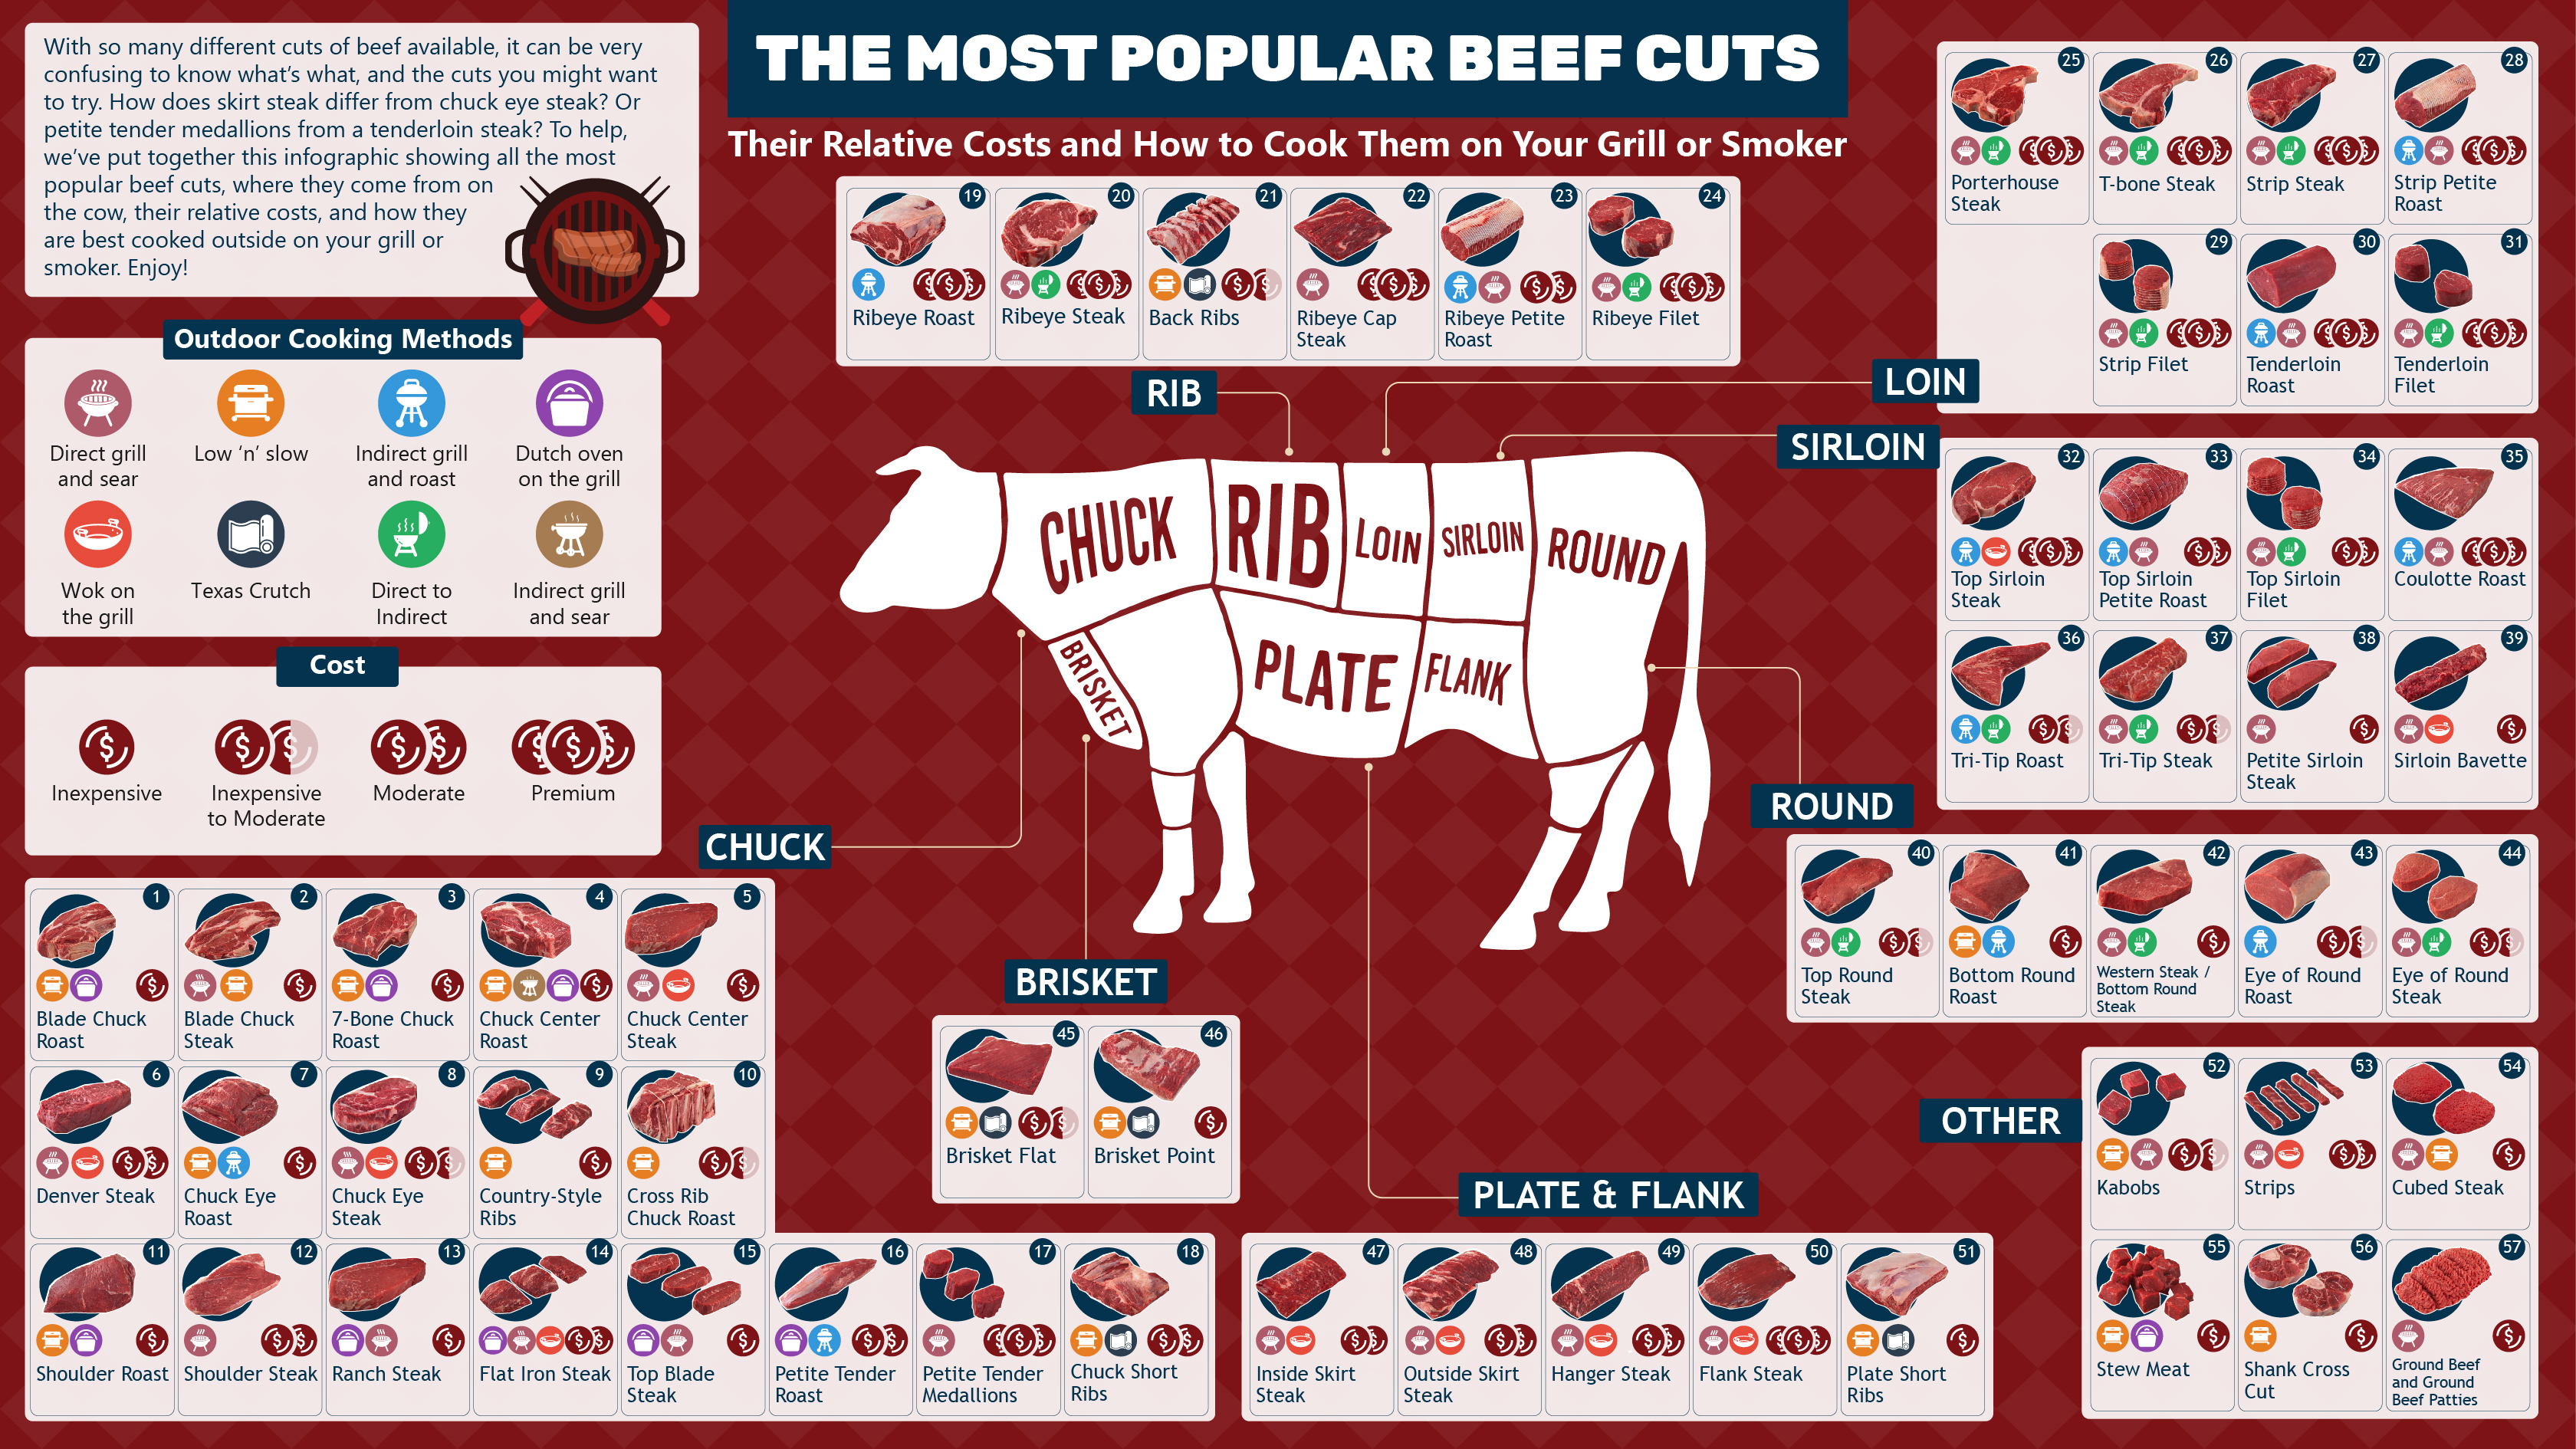 Beef cuts diagram, showing all cuts, where from on the cow and more